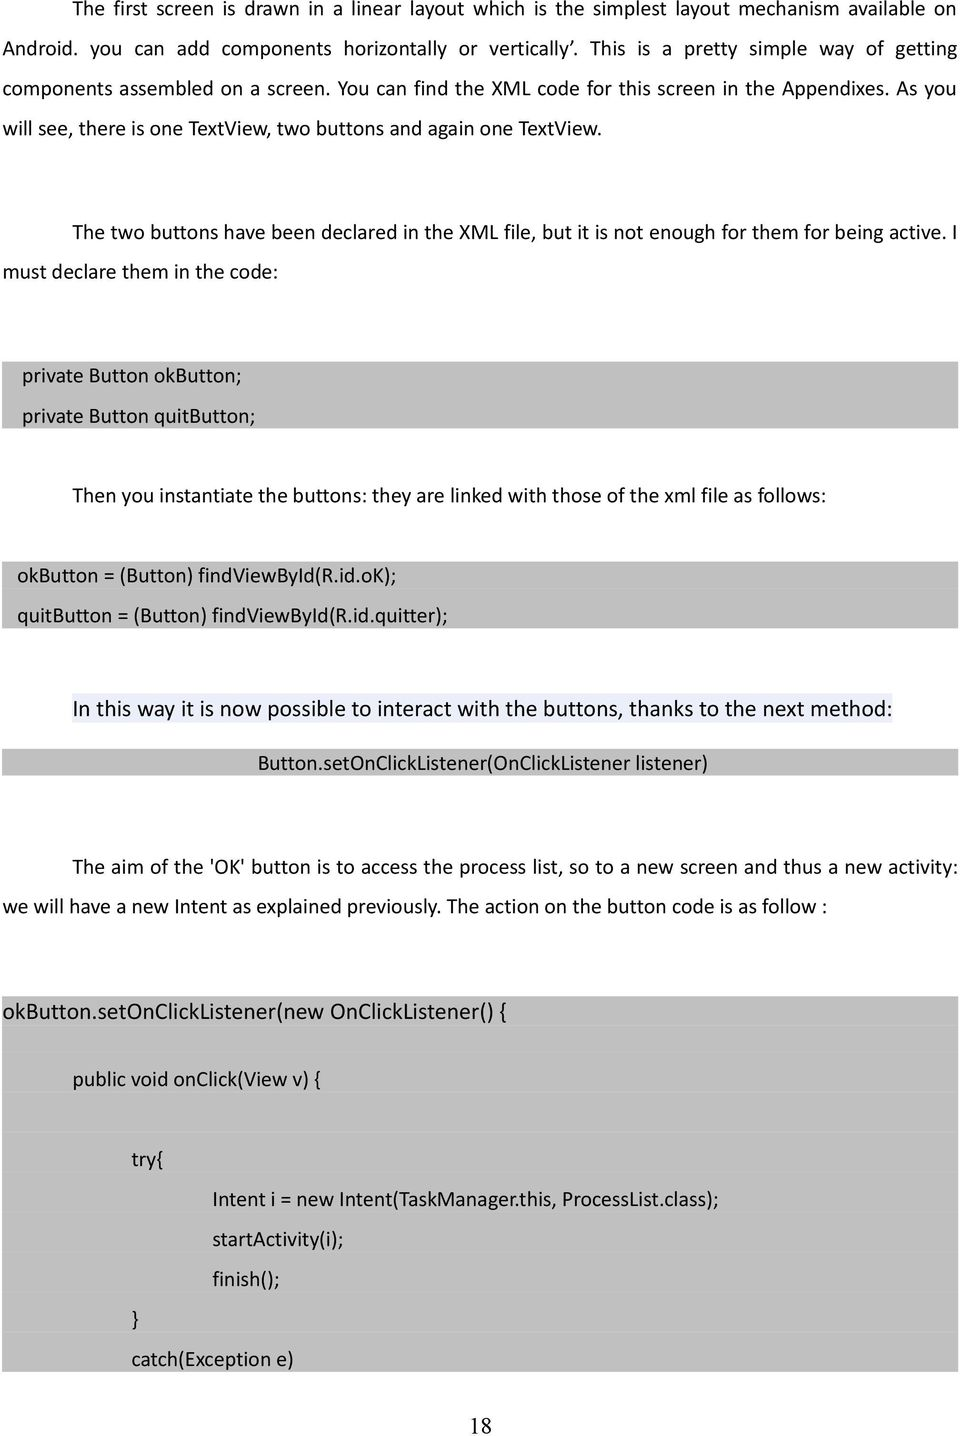 PROJECT REPORT  Android Application - PDF